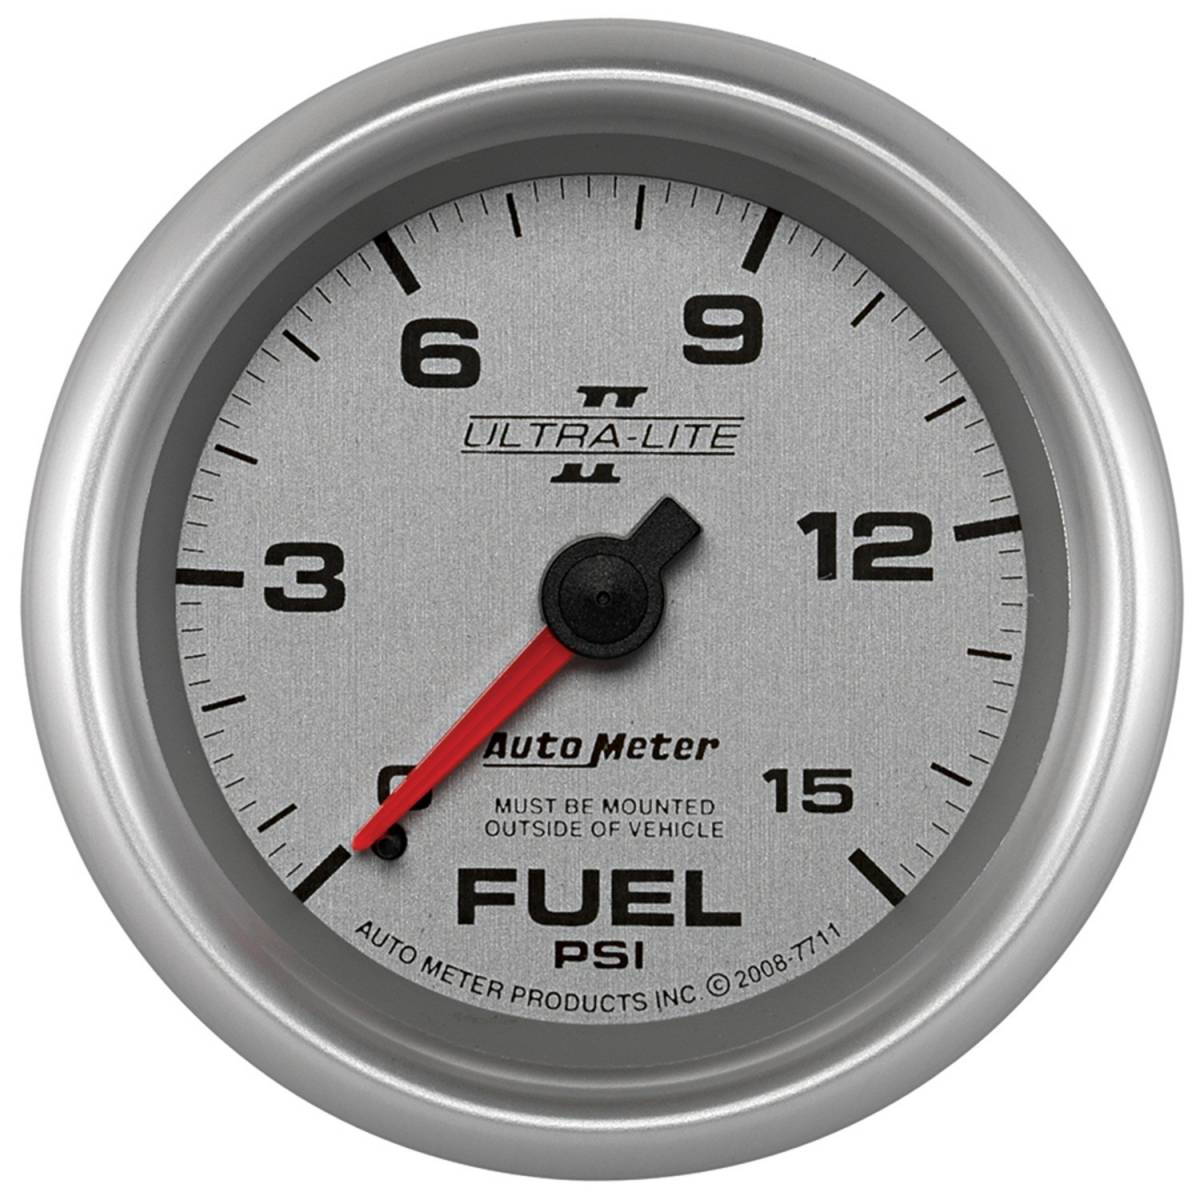 Autometer 4368 Ultra Lite Electric Water Pressure Gauge: AutoMeter #7711 Gauge; Fuel Pressure; 2 5/8in.; 15psi